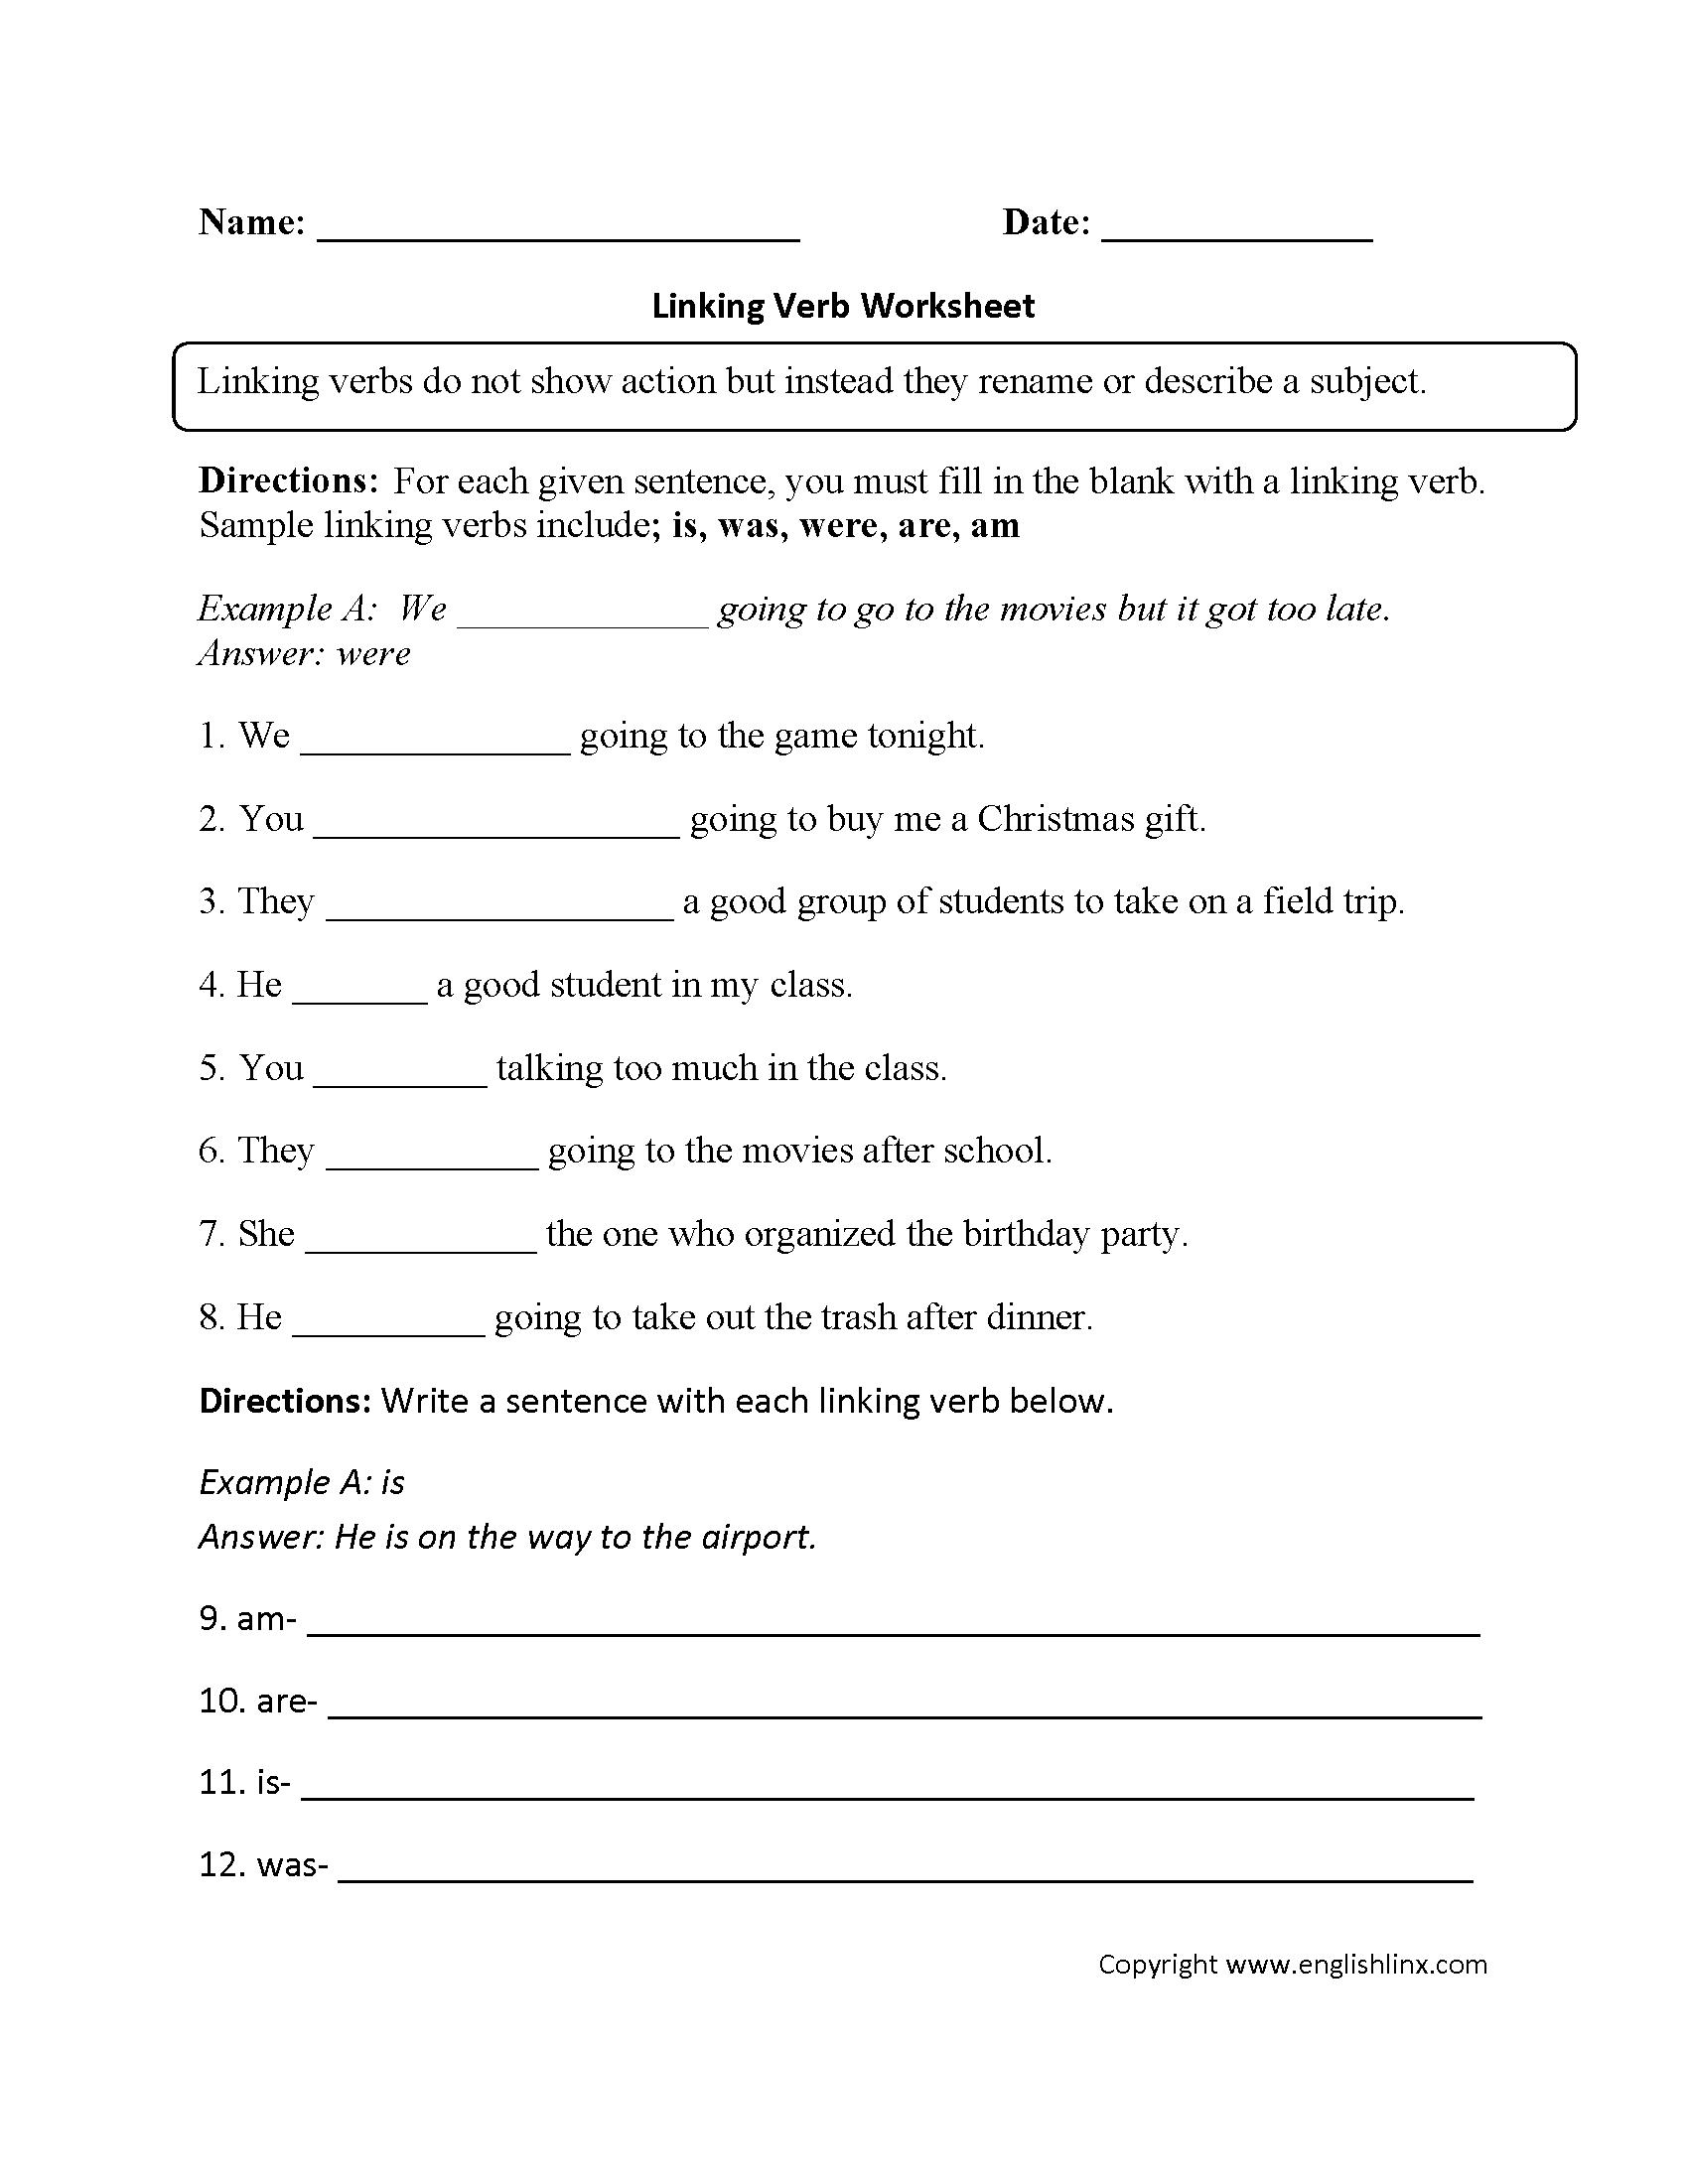 Free Worksheet Fill In The Blank Worksheets worksheet parts of speech worksheets middle school resume fill in blank templates how free printable worksheets